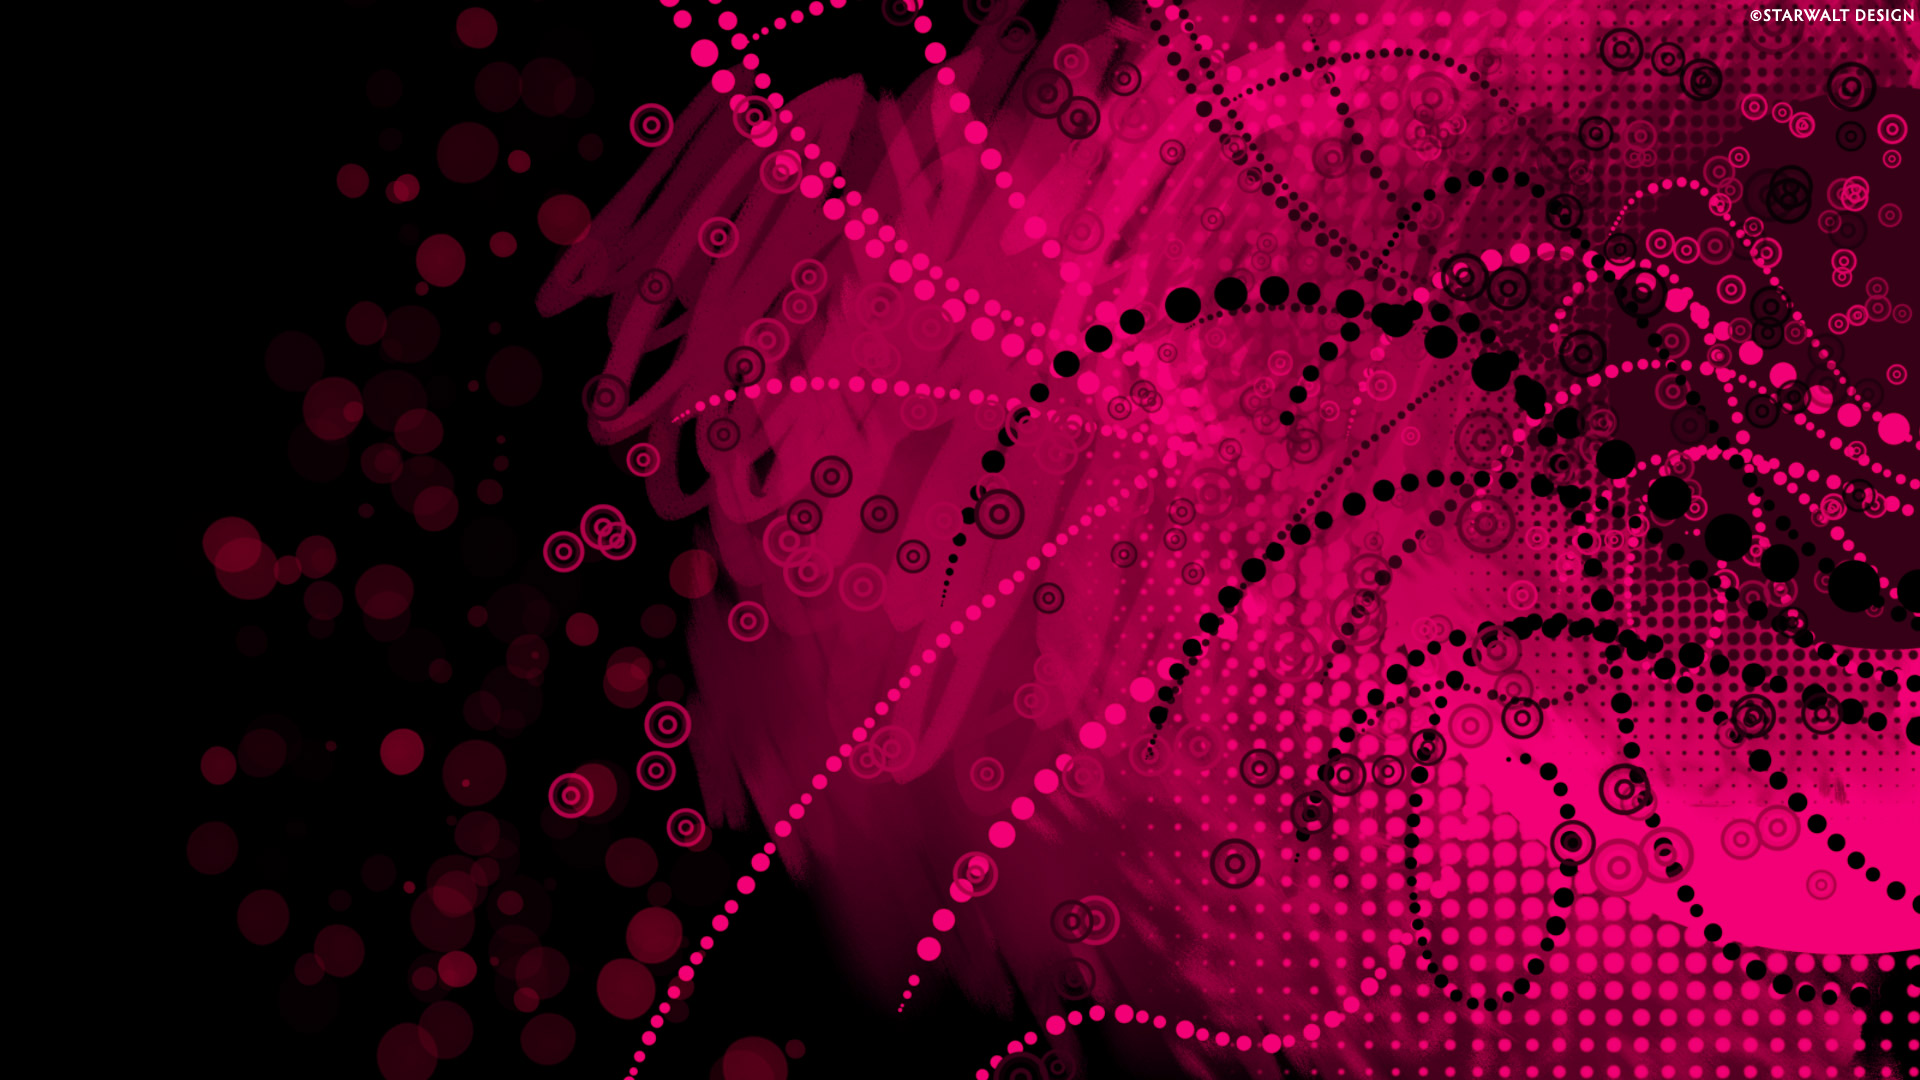 Pink Dark Vector 1080p wallpaper